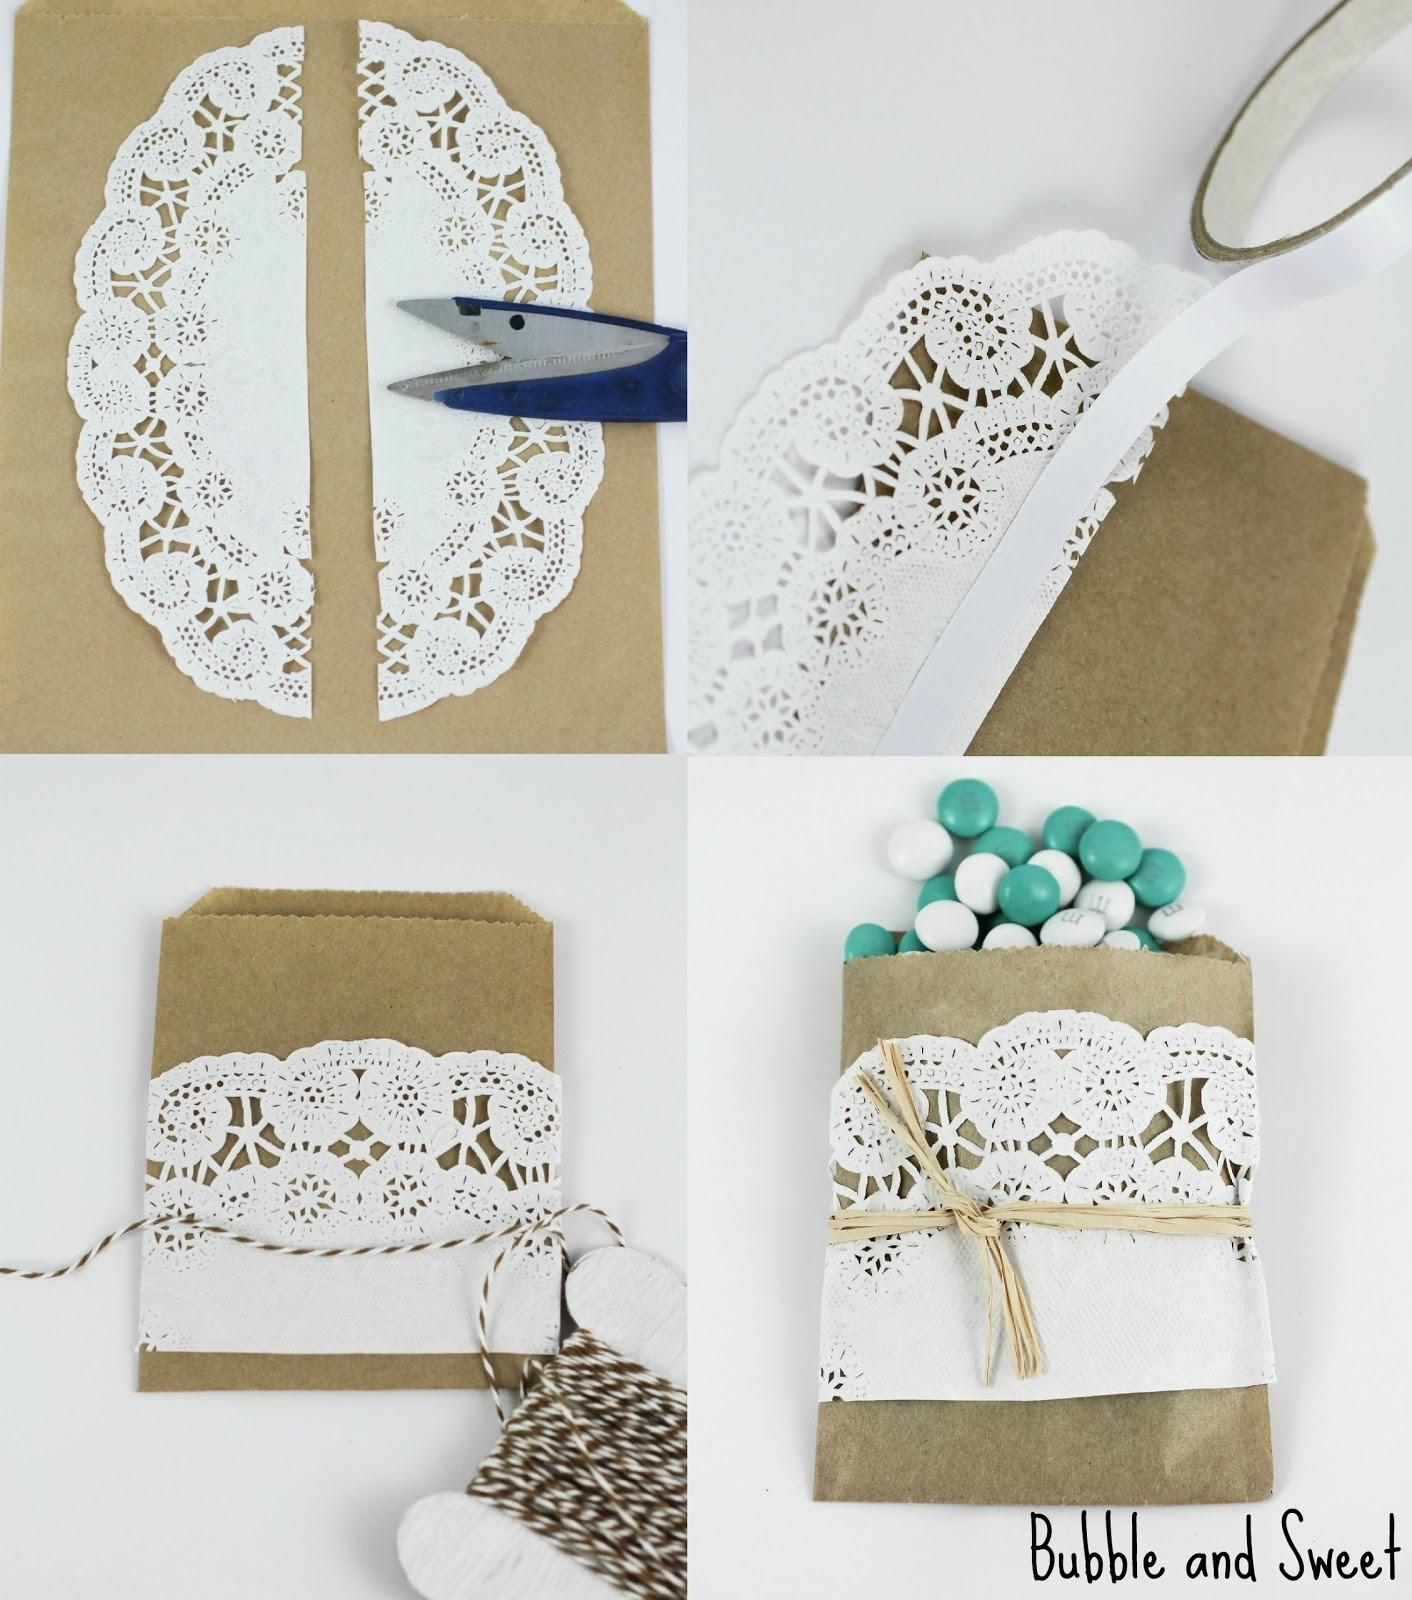 Bubble Sweet Diy Mini Brown Paper Doily Snack Bags